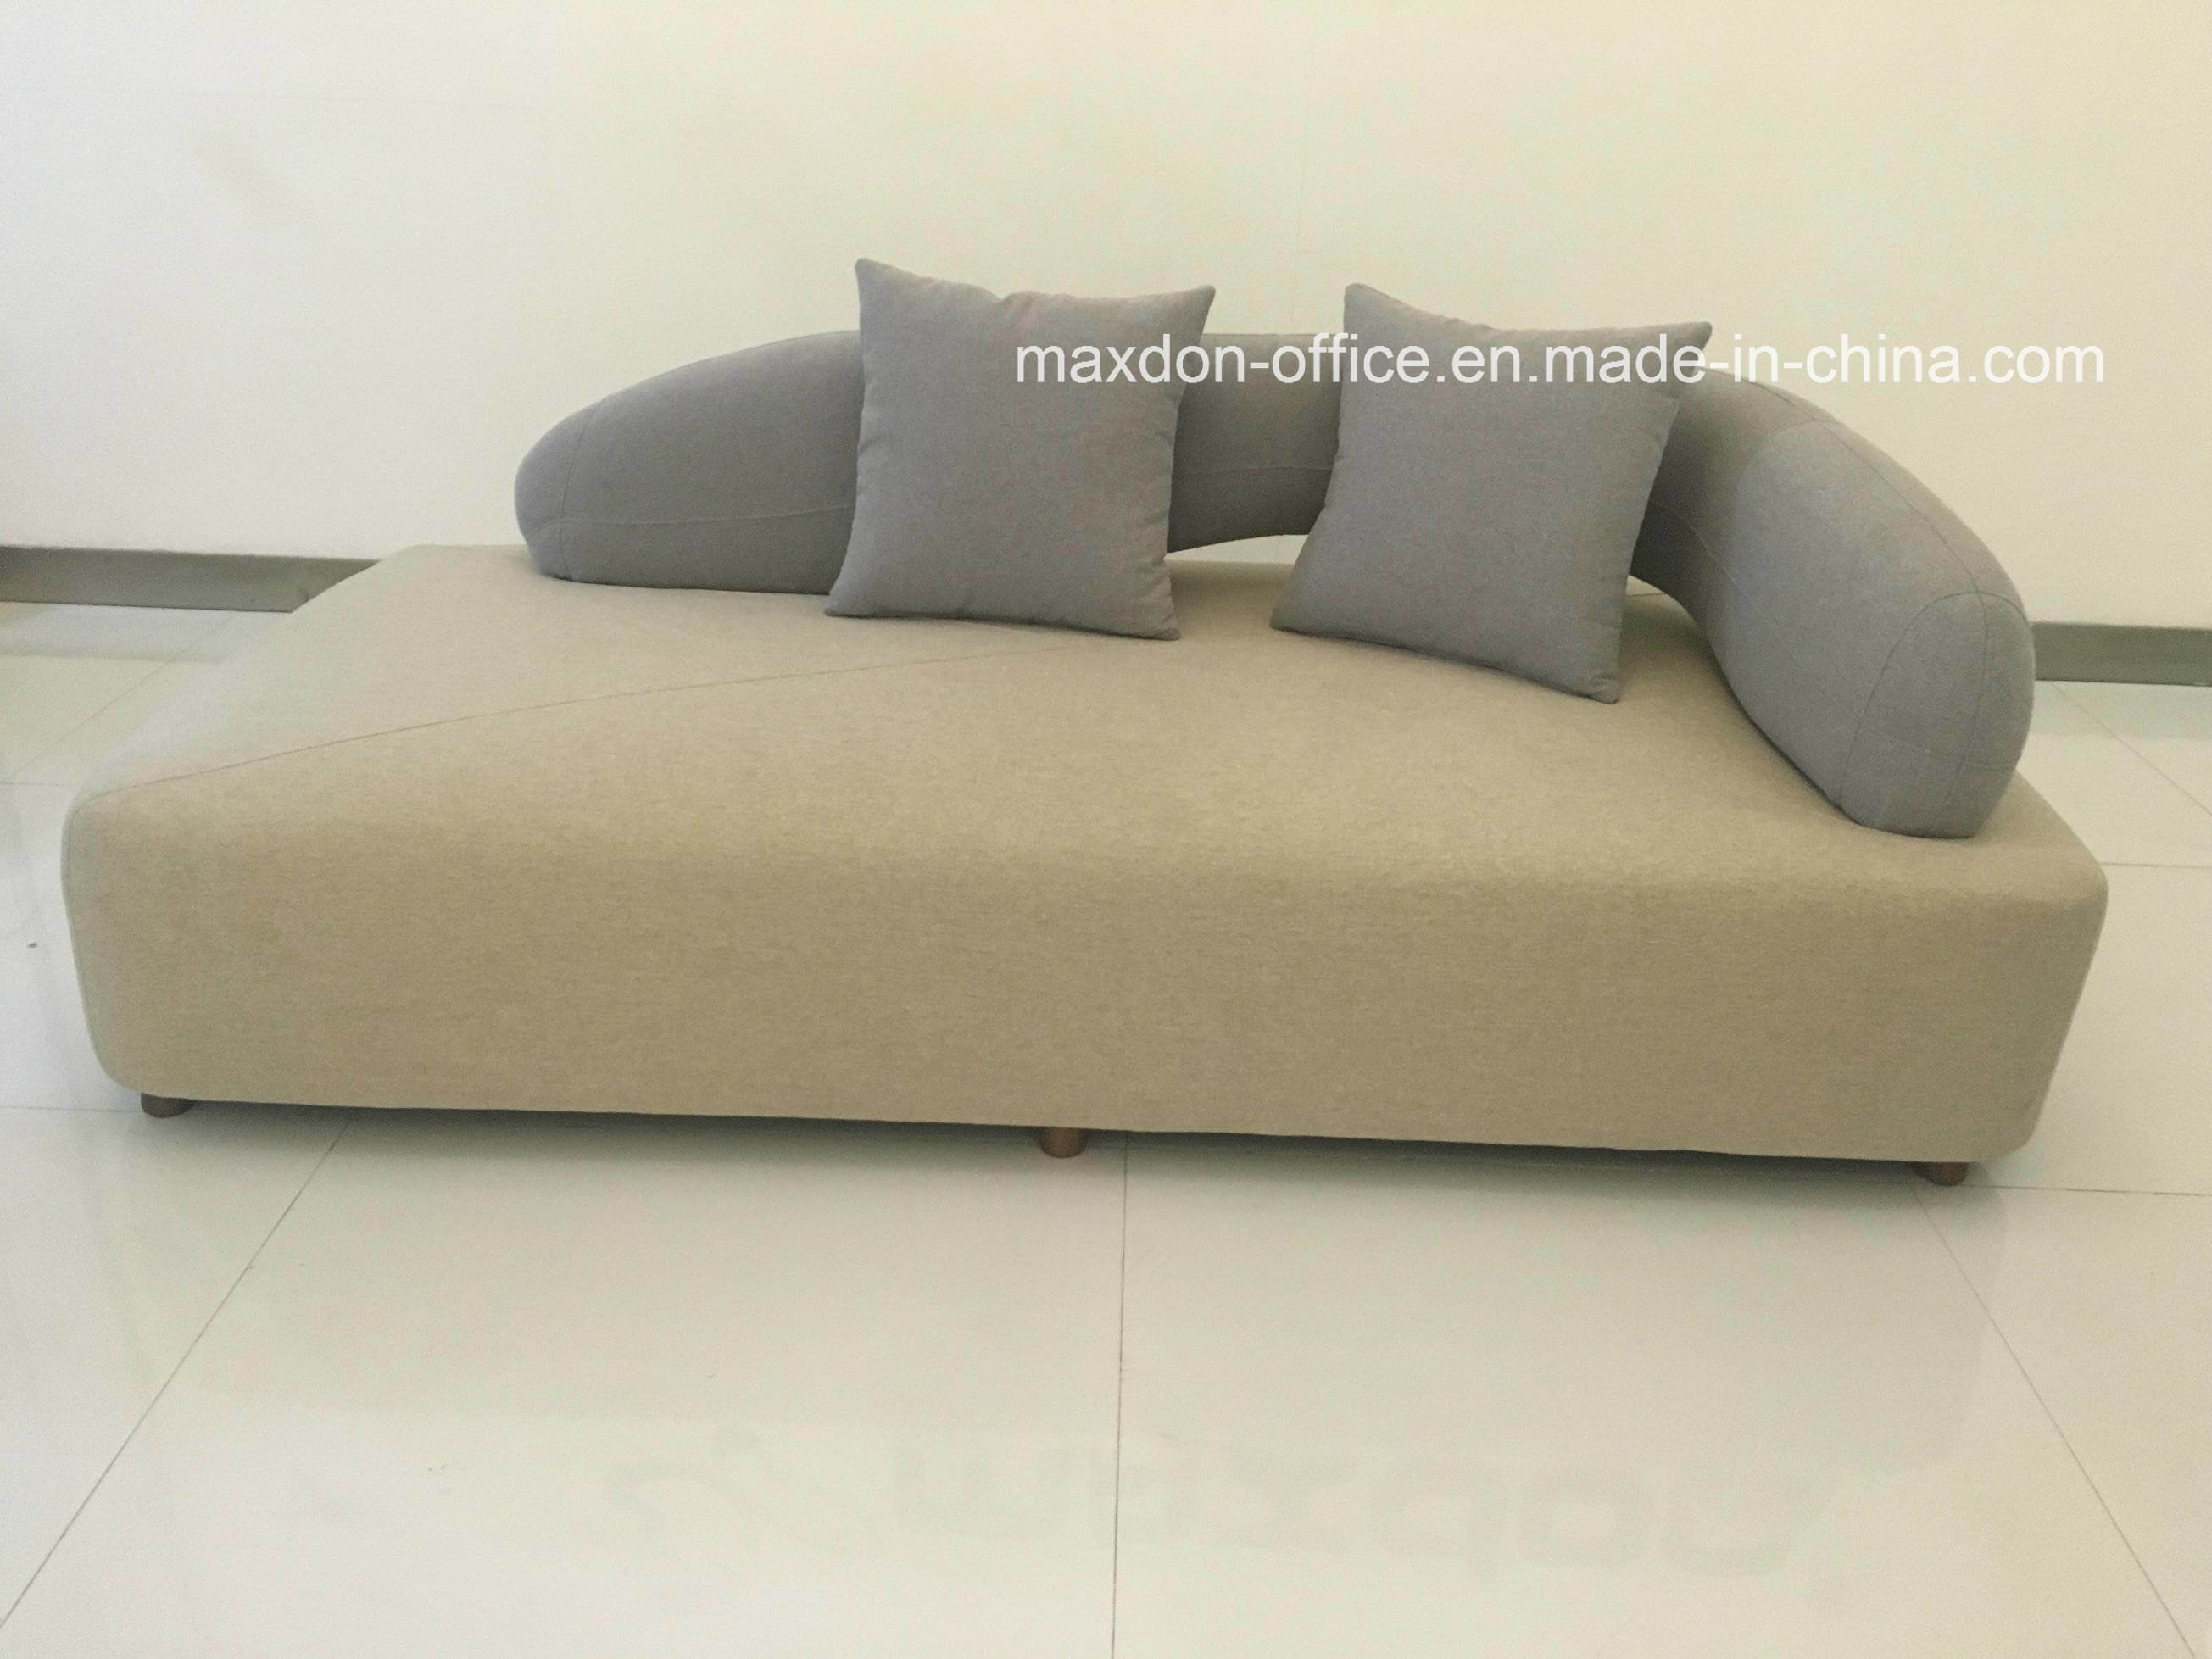 China fice Chair fice Furniture fice Sofa supplier